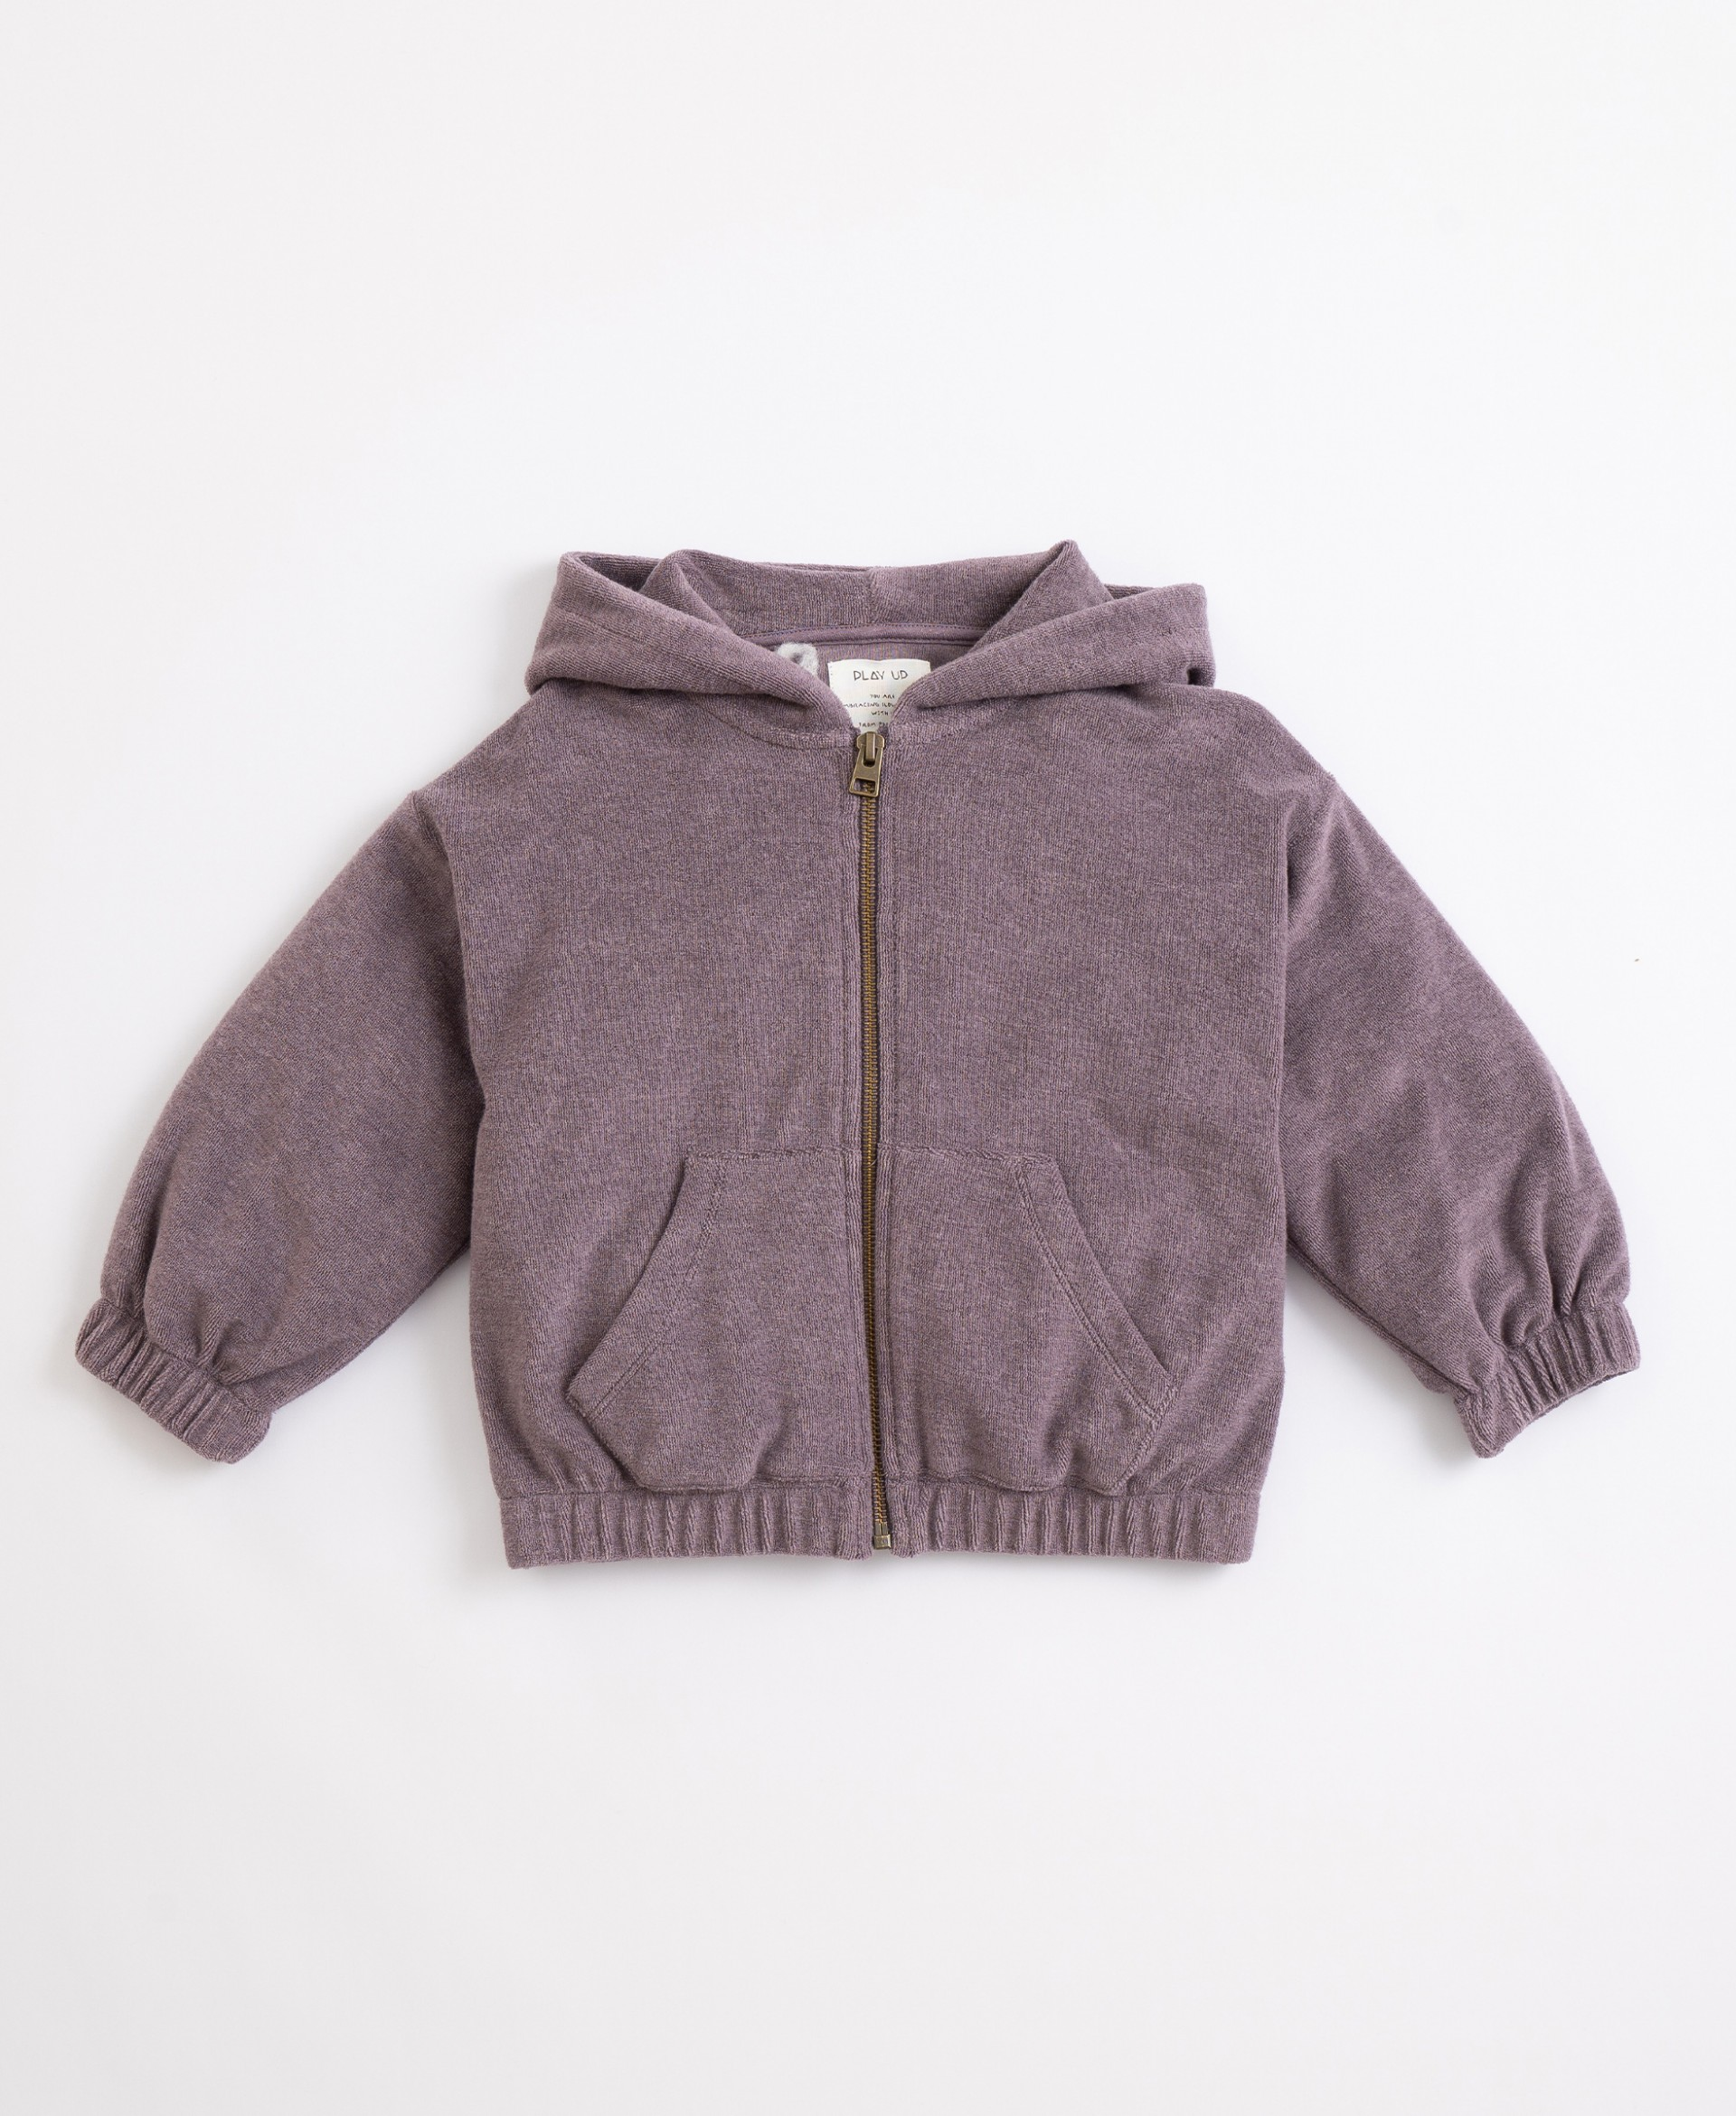 Jacket in organic cotton and recycled cotton | Illustration